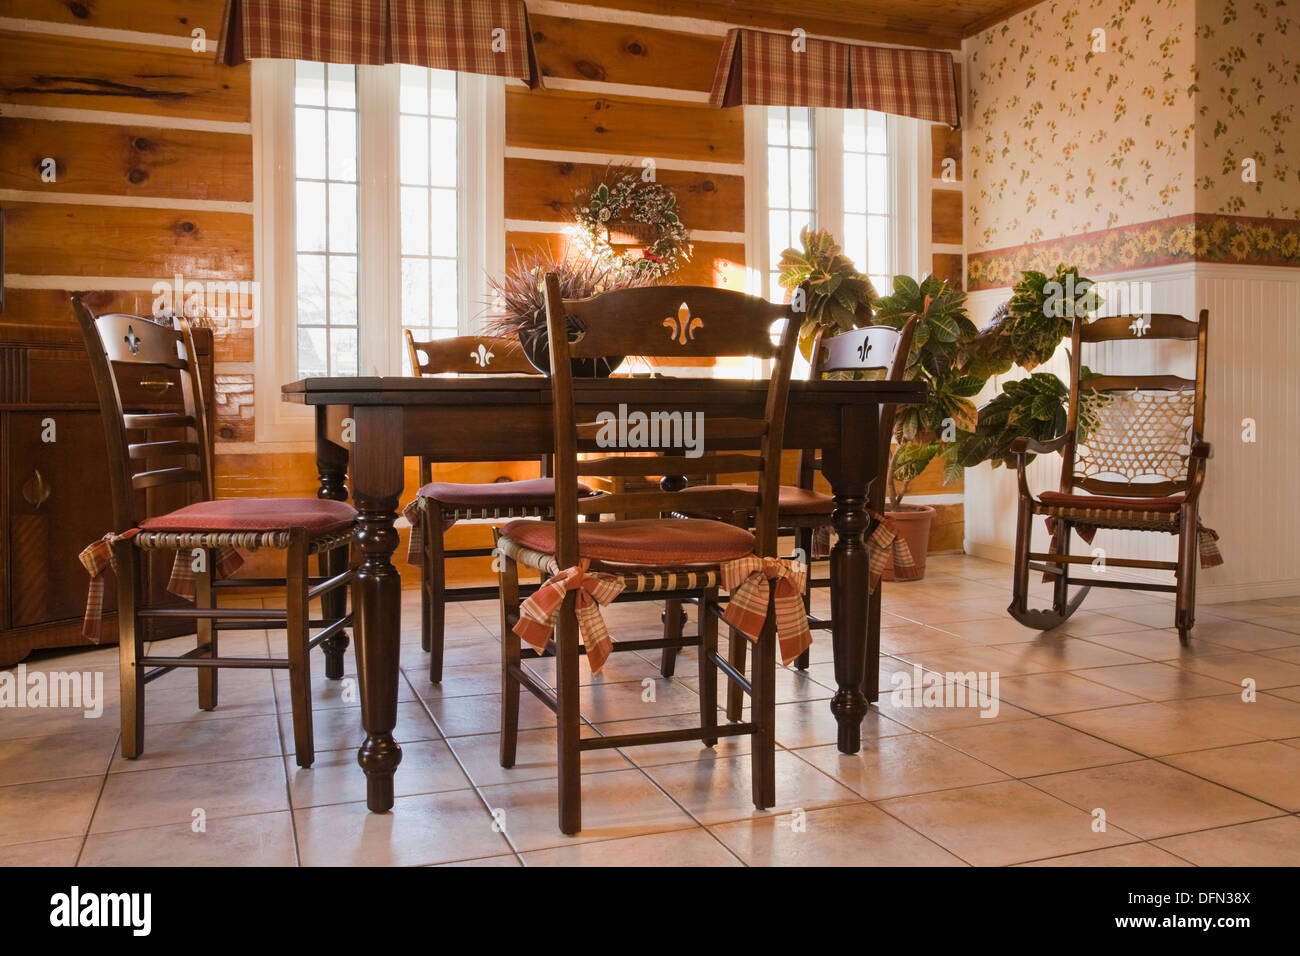 Antique style dining table and chairs in the dining room of a 1978 reproduction of an old Canadiana cottage style log and & Antique style dining table and chairs in the dining room of a 1978 ...